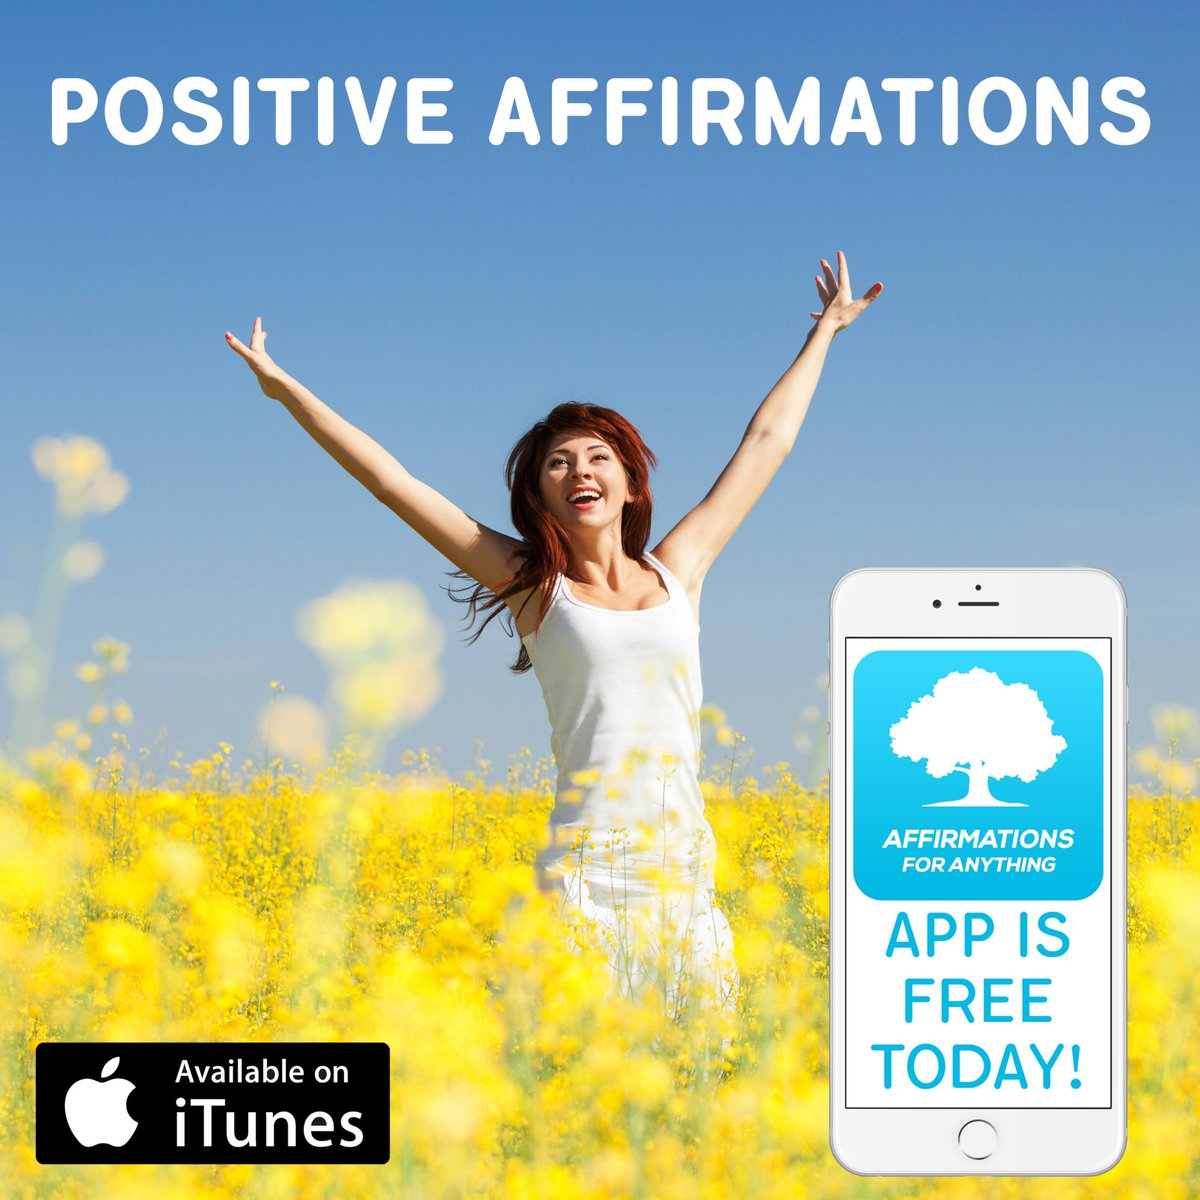 Enjoy the Proven Power of #Positive #Daily #Affirmations! #App is #FREE #Today! https://itunes.apple.com/app/id1309109294…